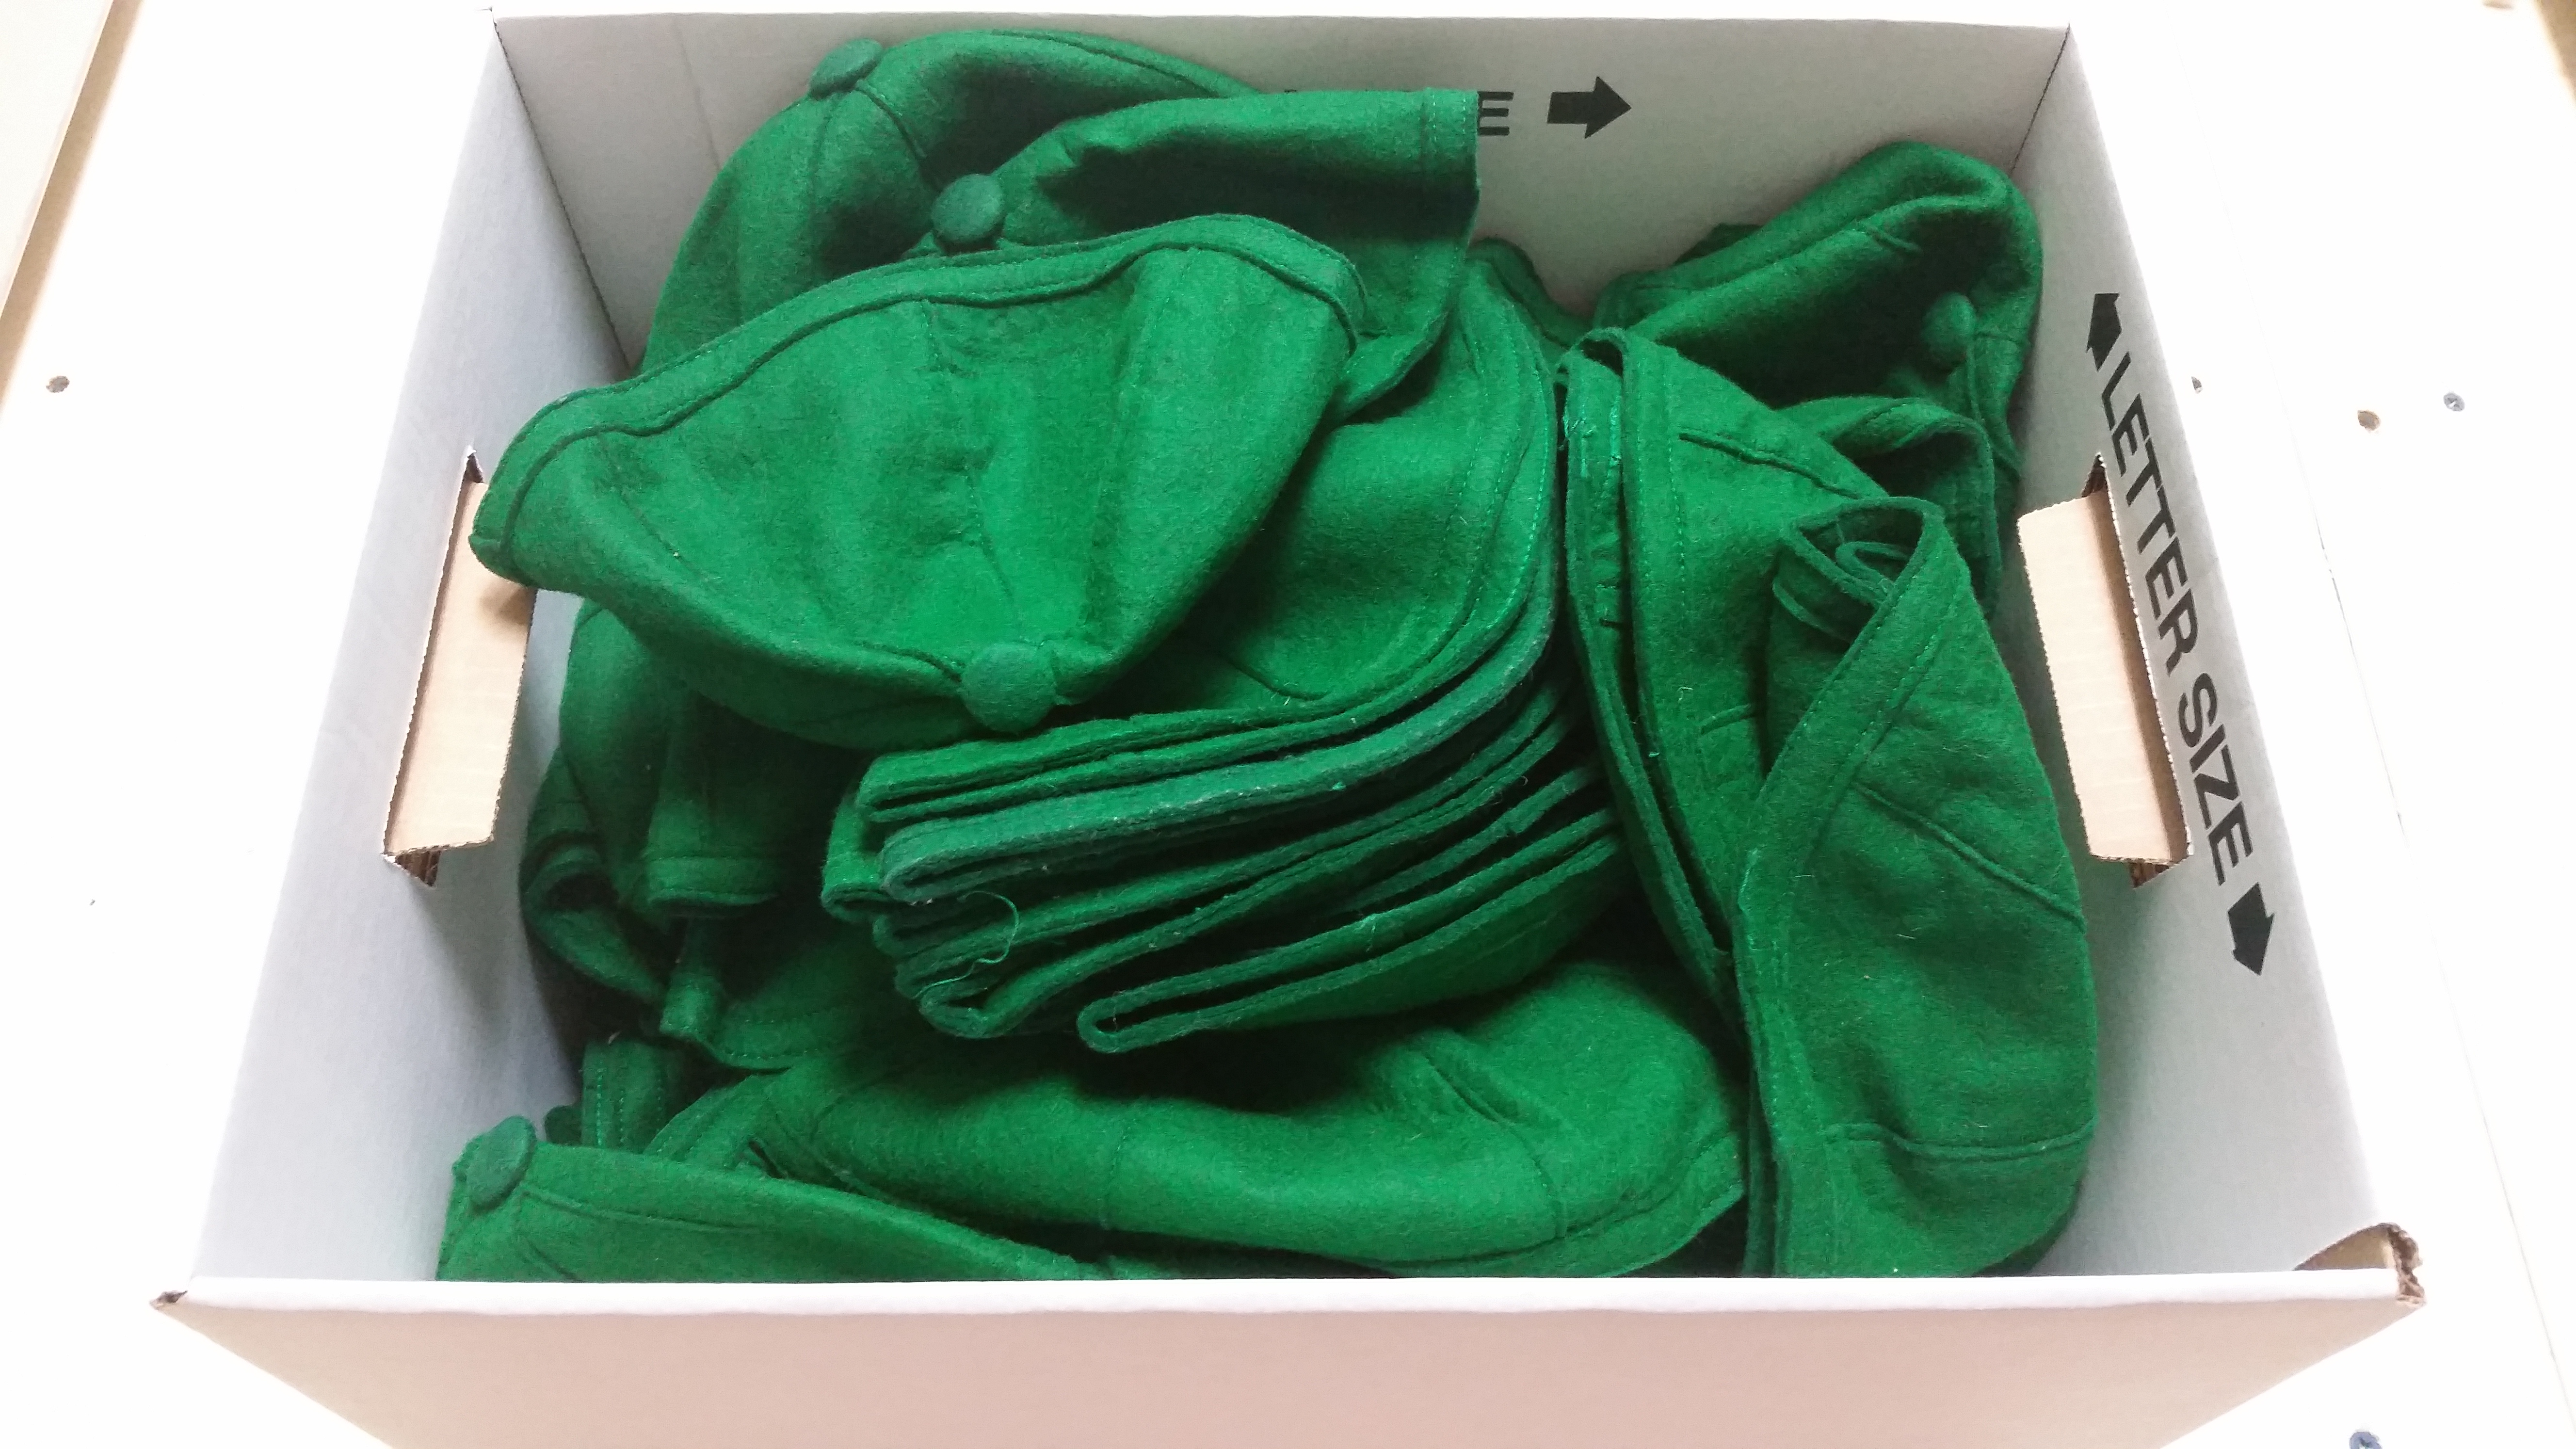 cardboard box full of green felt beanies from Nash Library archives